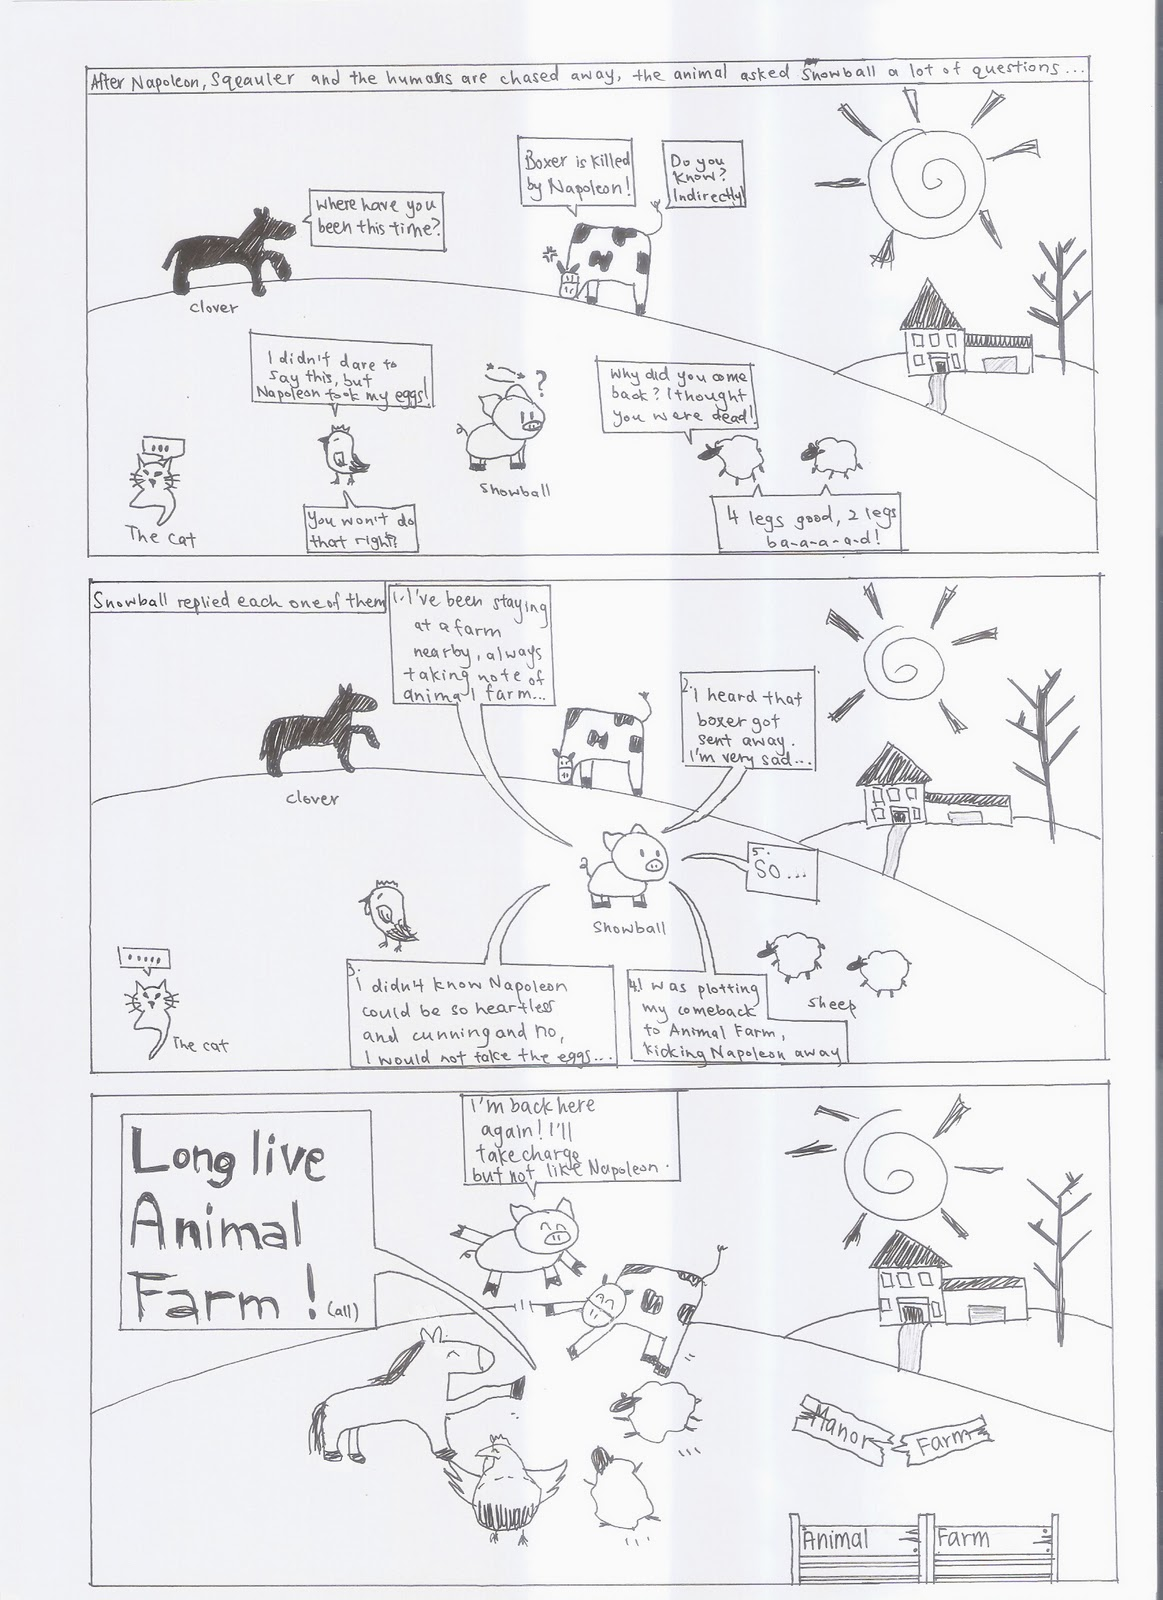 animal farm napoleon character essay Animal farm character analysis of napoleon animal farm: character analysis of napoleon by: george orwell book review by george lacy mrs spain fall '96 napoleon was a large rather fierce looking berkshire boar, that was spoiled and always got his way he was the only pig of the kind on the farm.